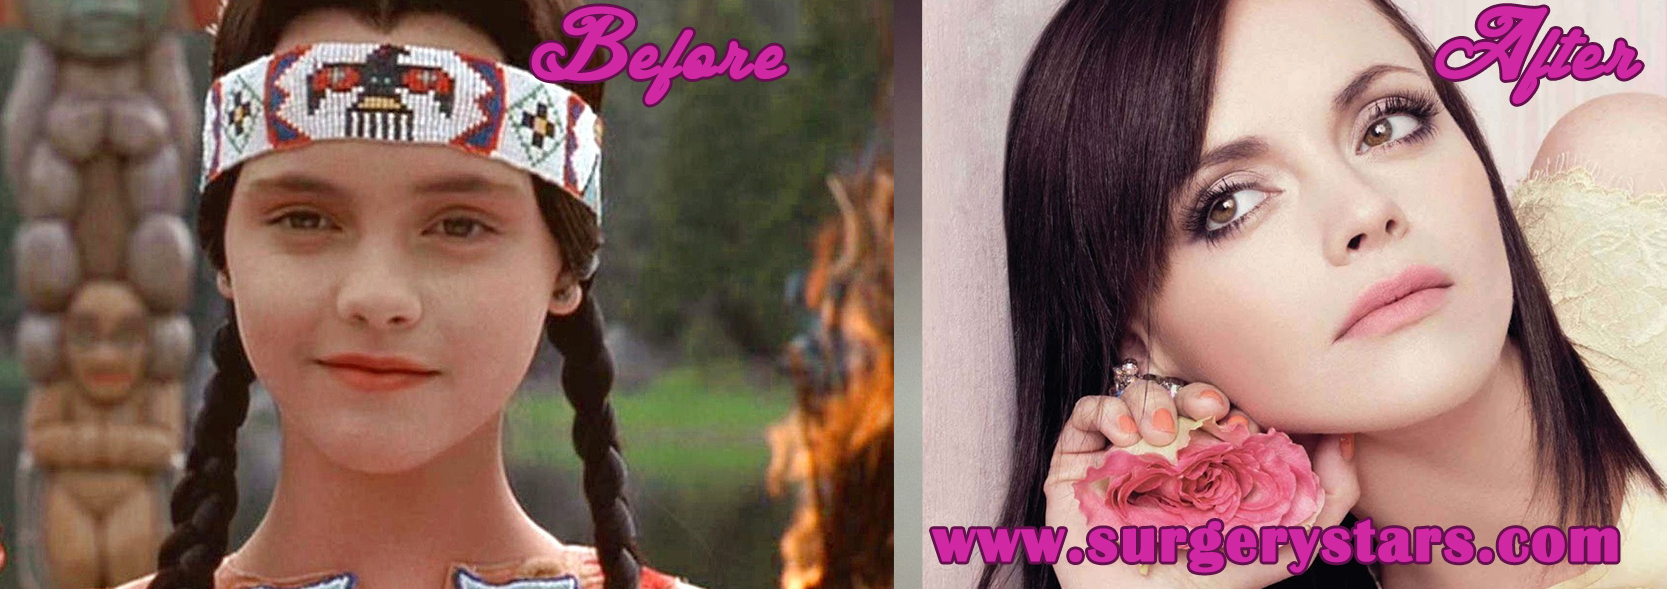 The Christina Ricci Plastic Surgery Story - Bobs and Nose C Cup Breast Celebrities